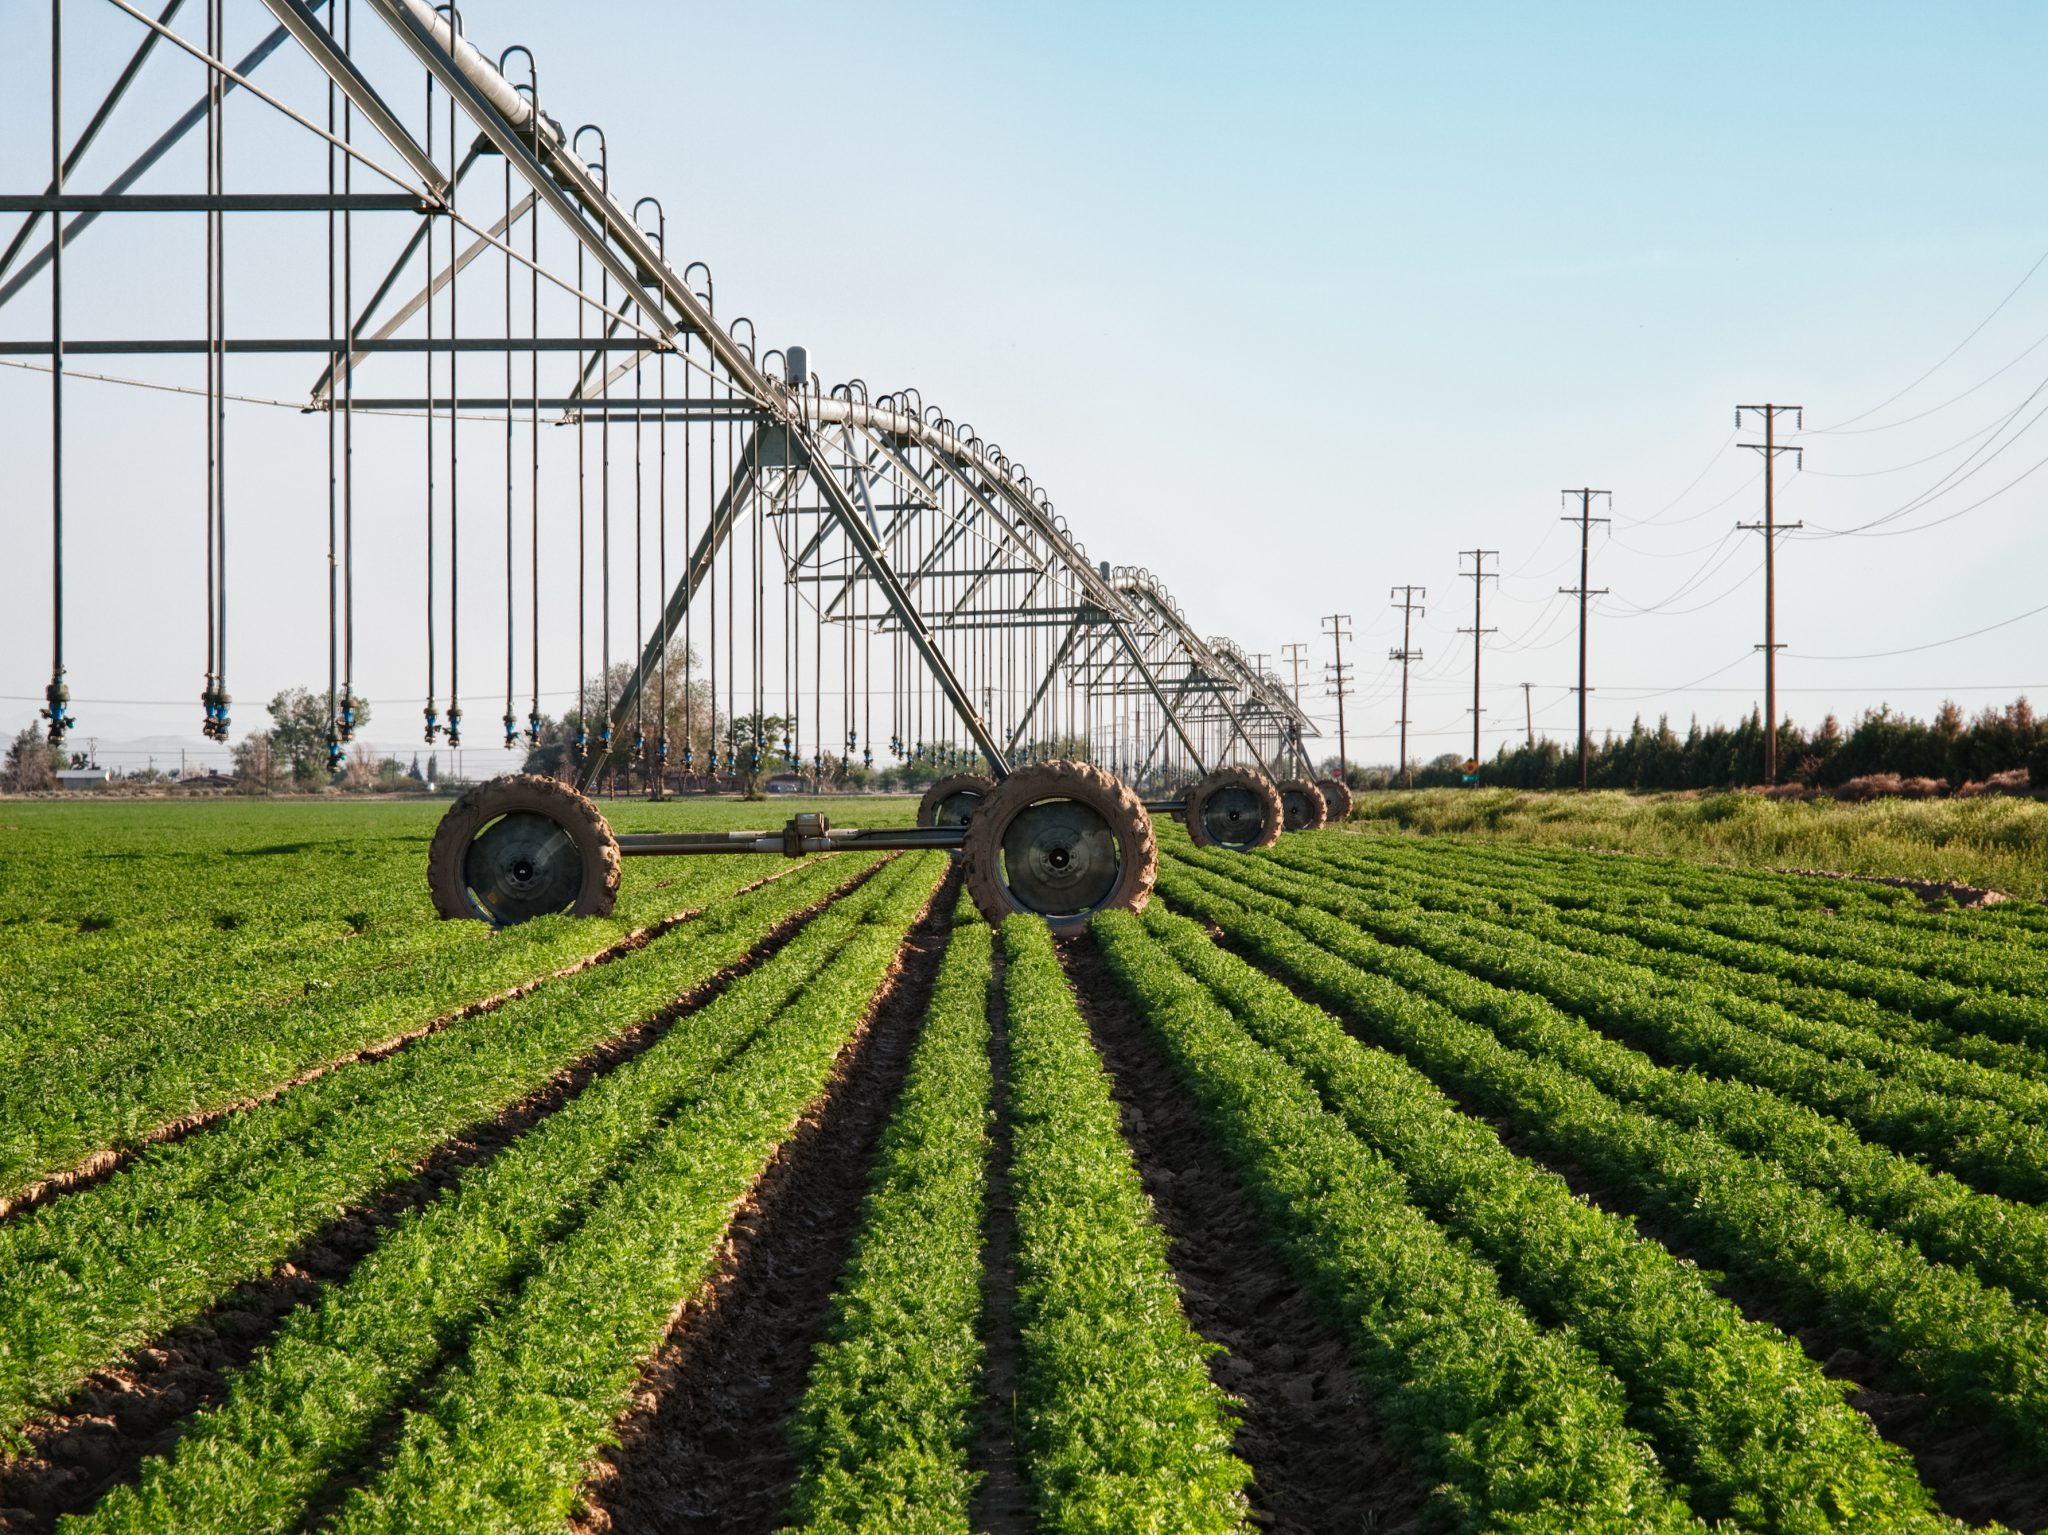 Center pivot irrigation with drop sprinklers over leaf crop agriculture in Antelope Valley, Mojave Desert, California.